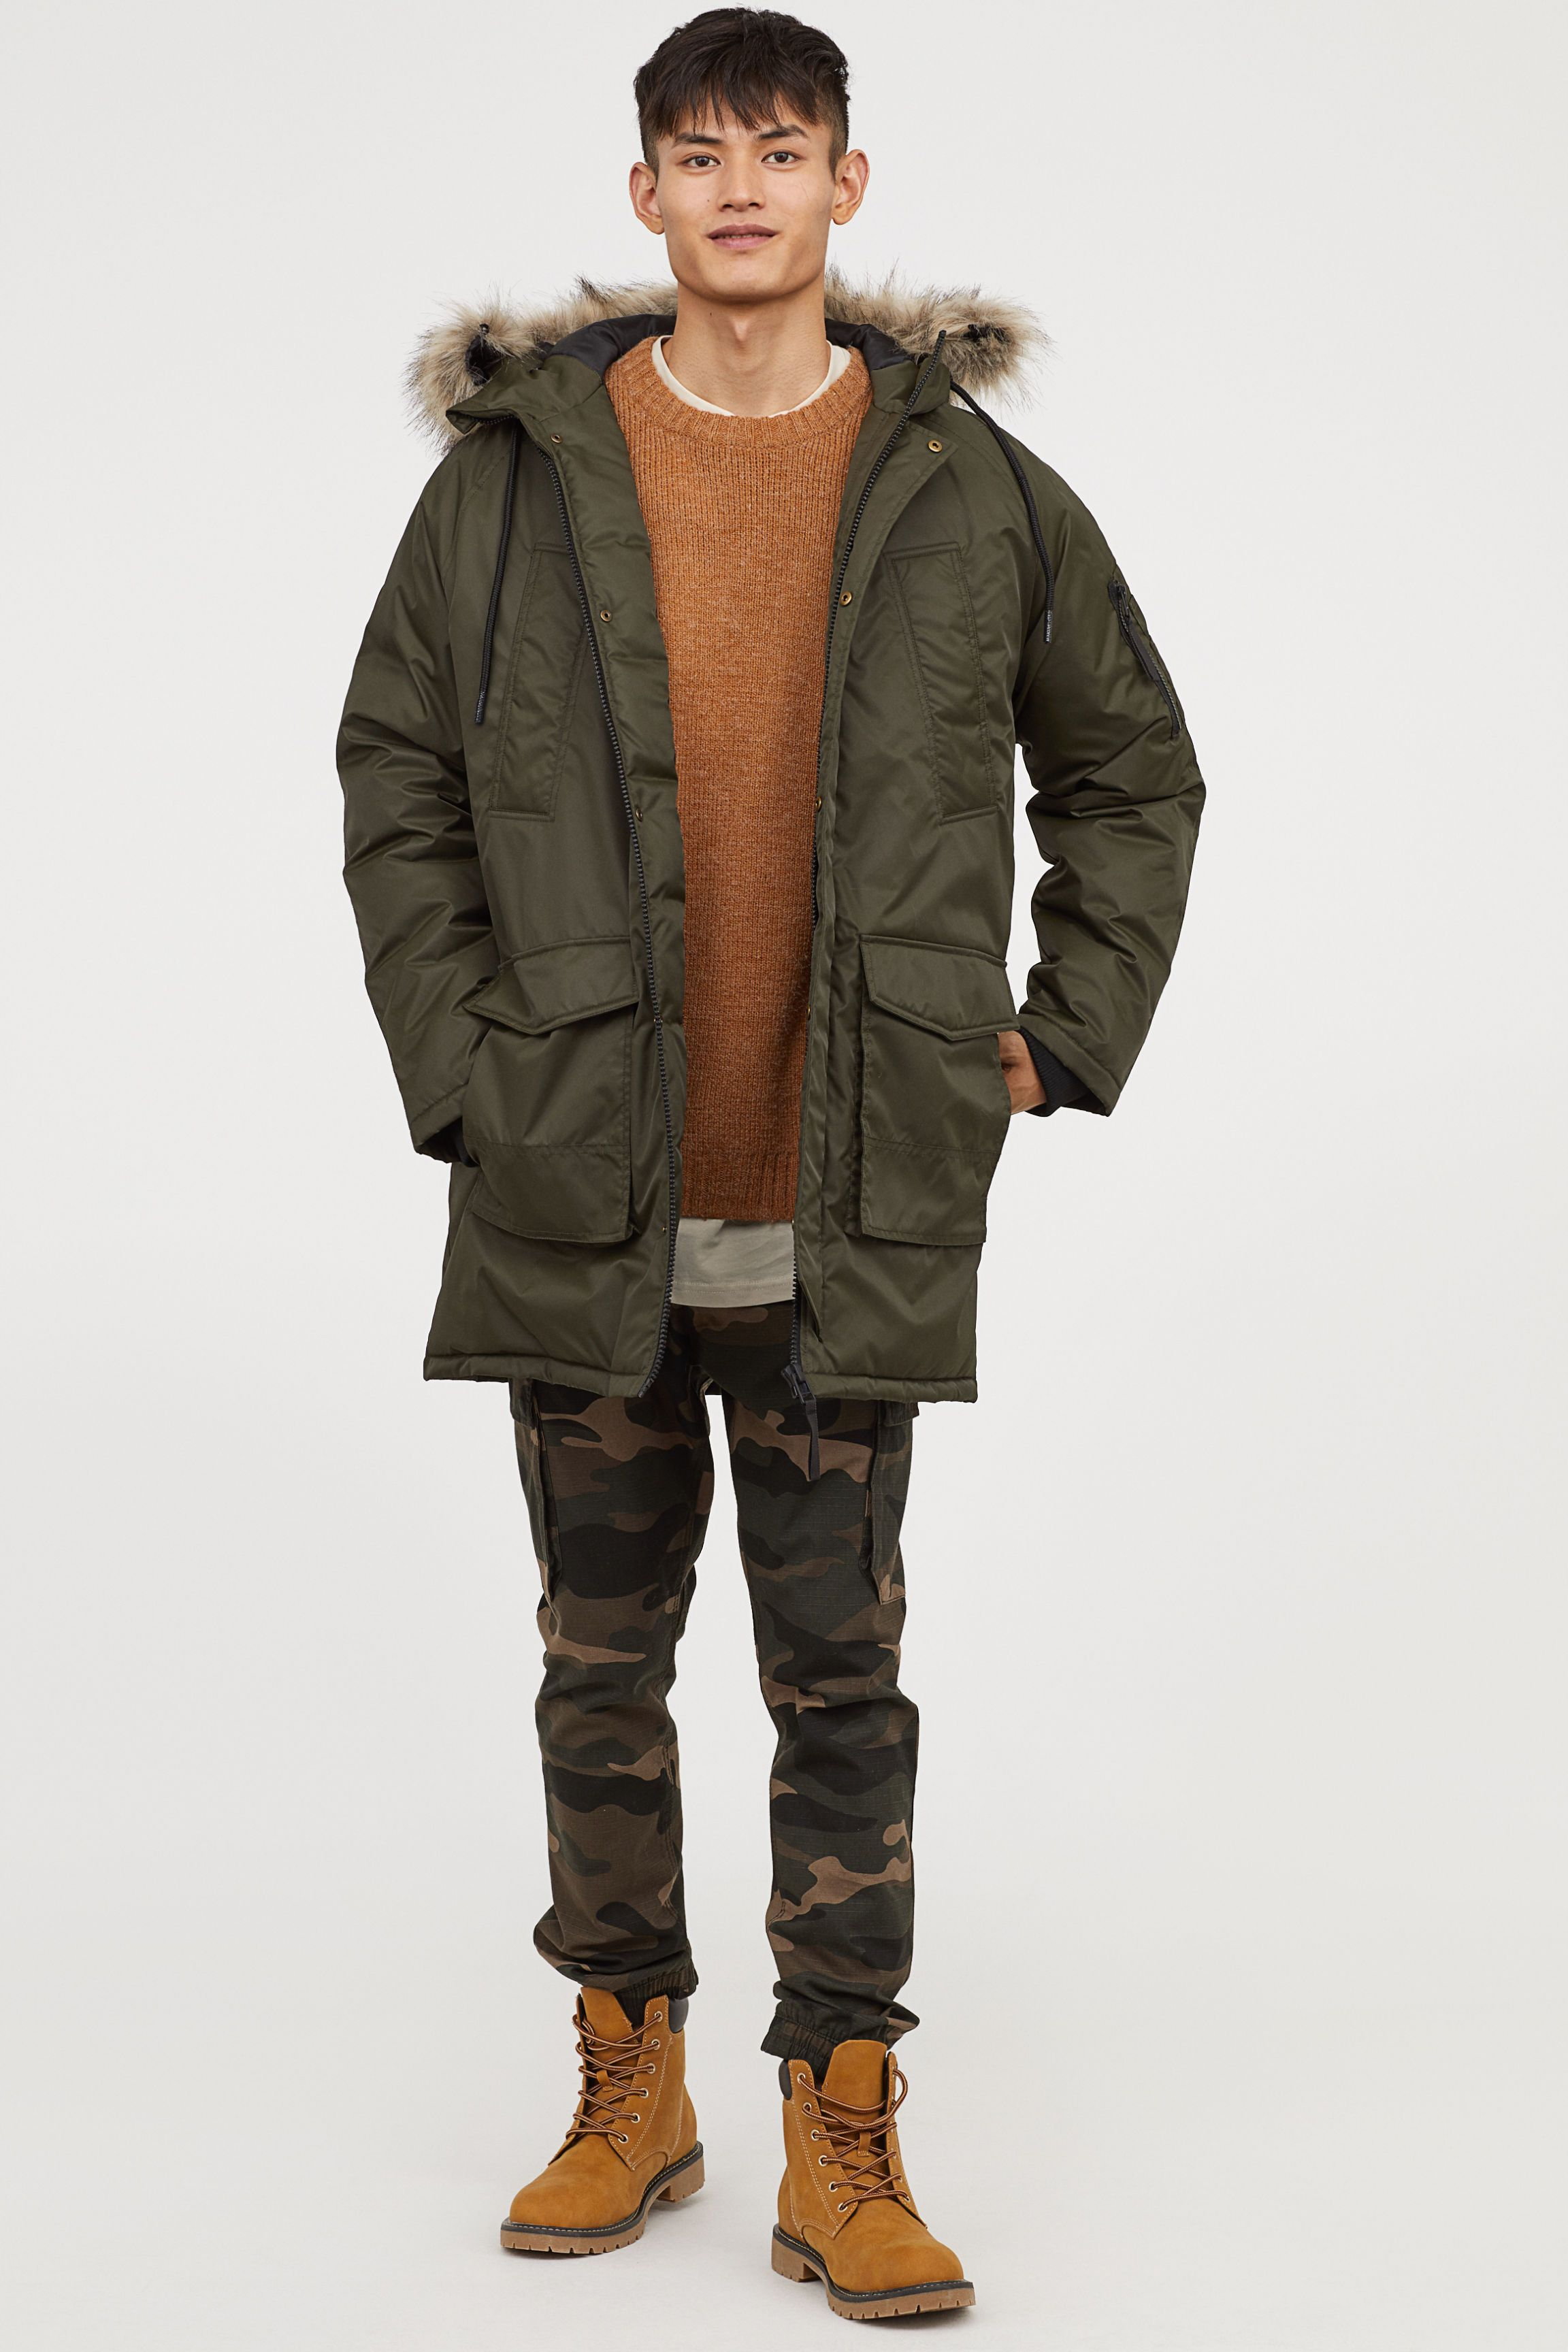 To acquire Warm stylish mens winter coats picture trends